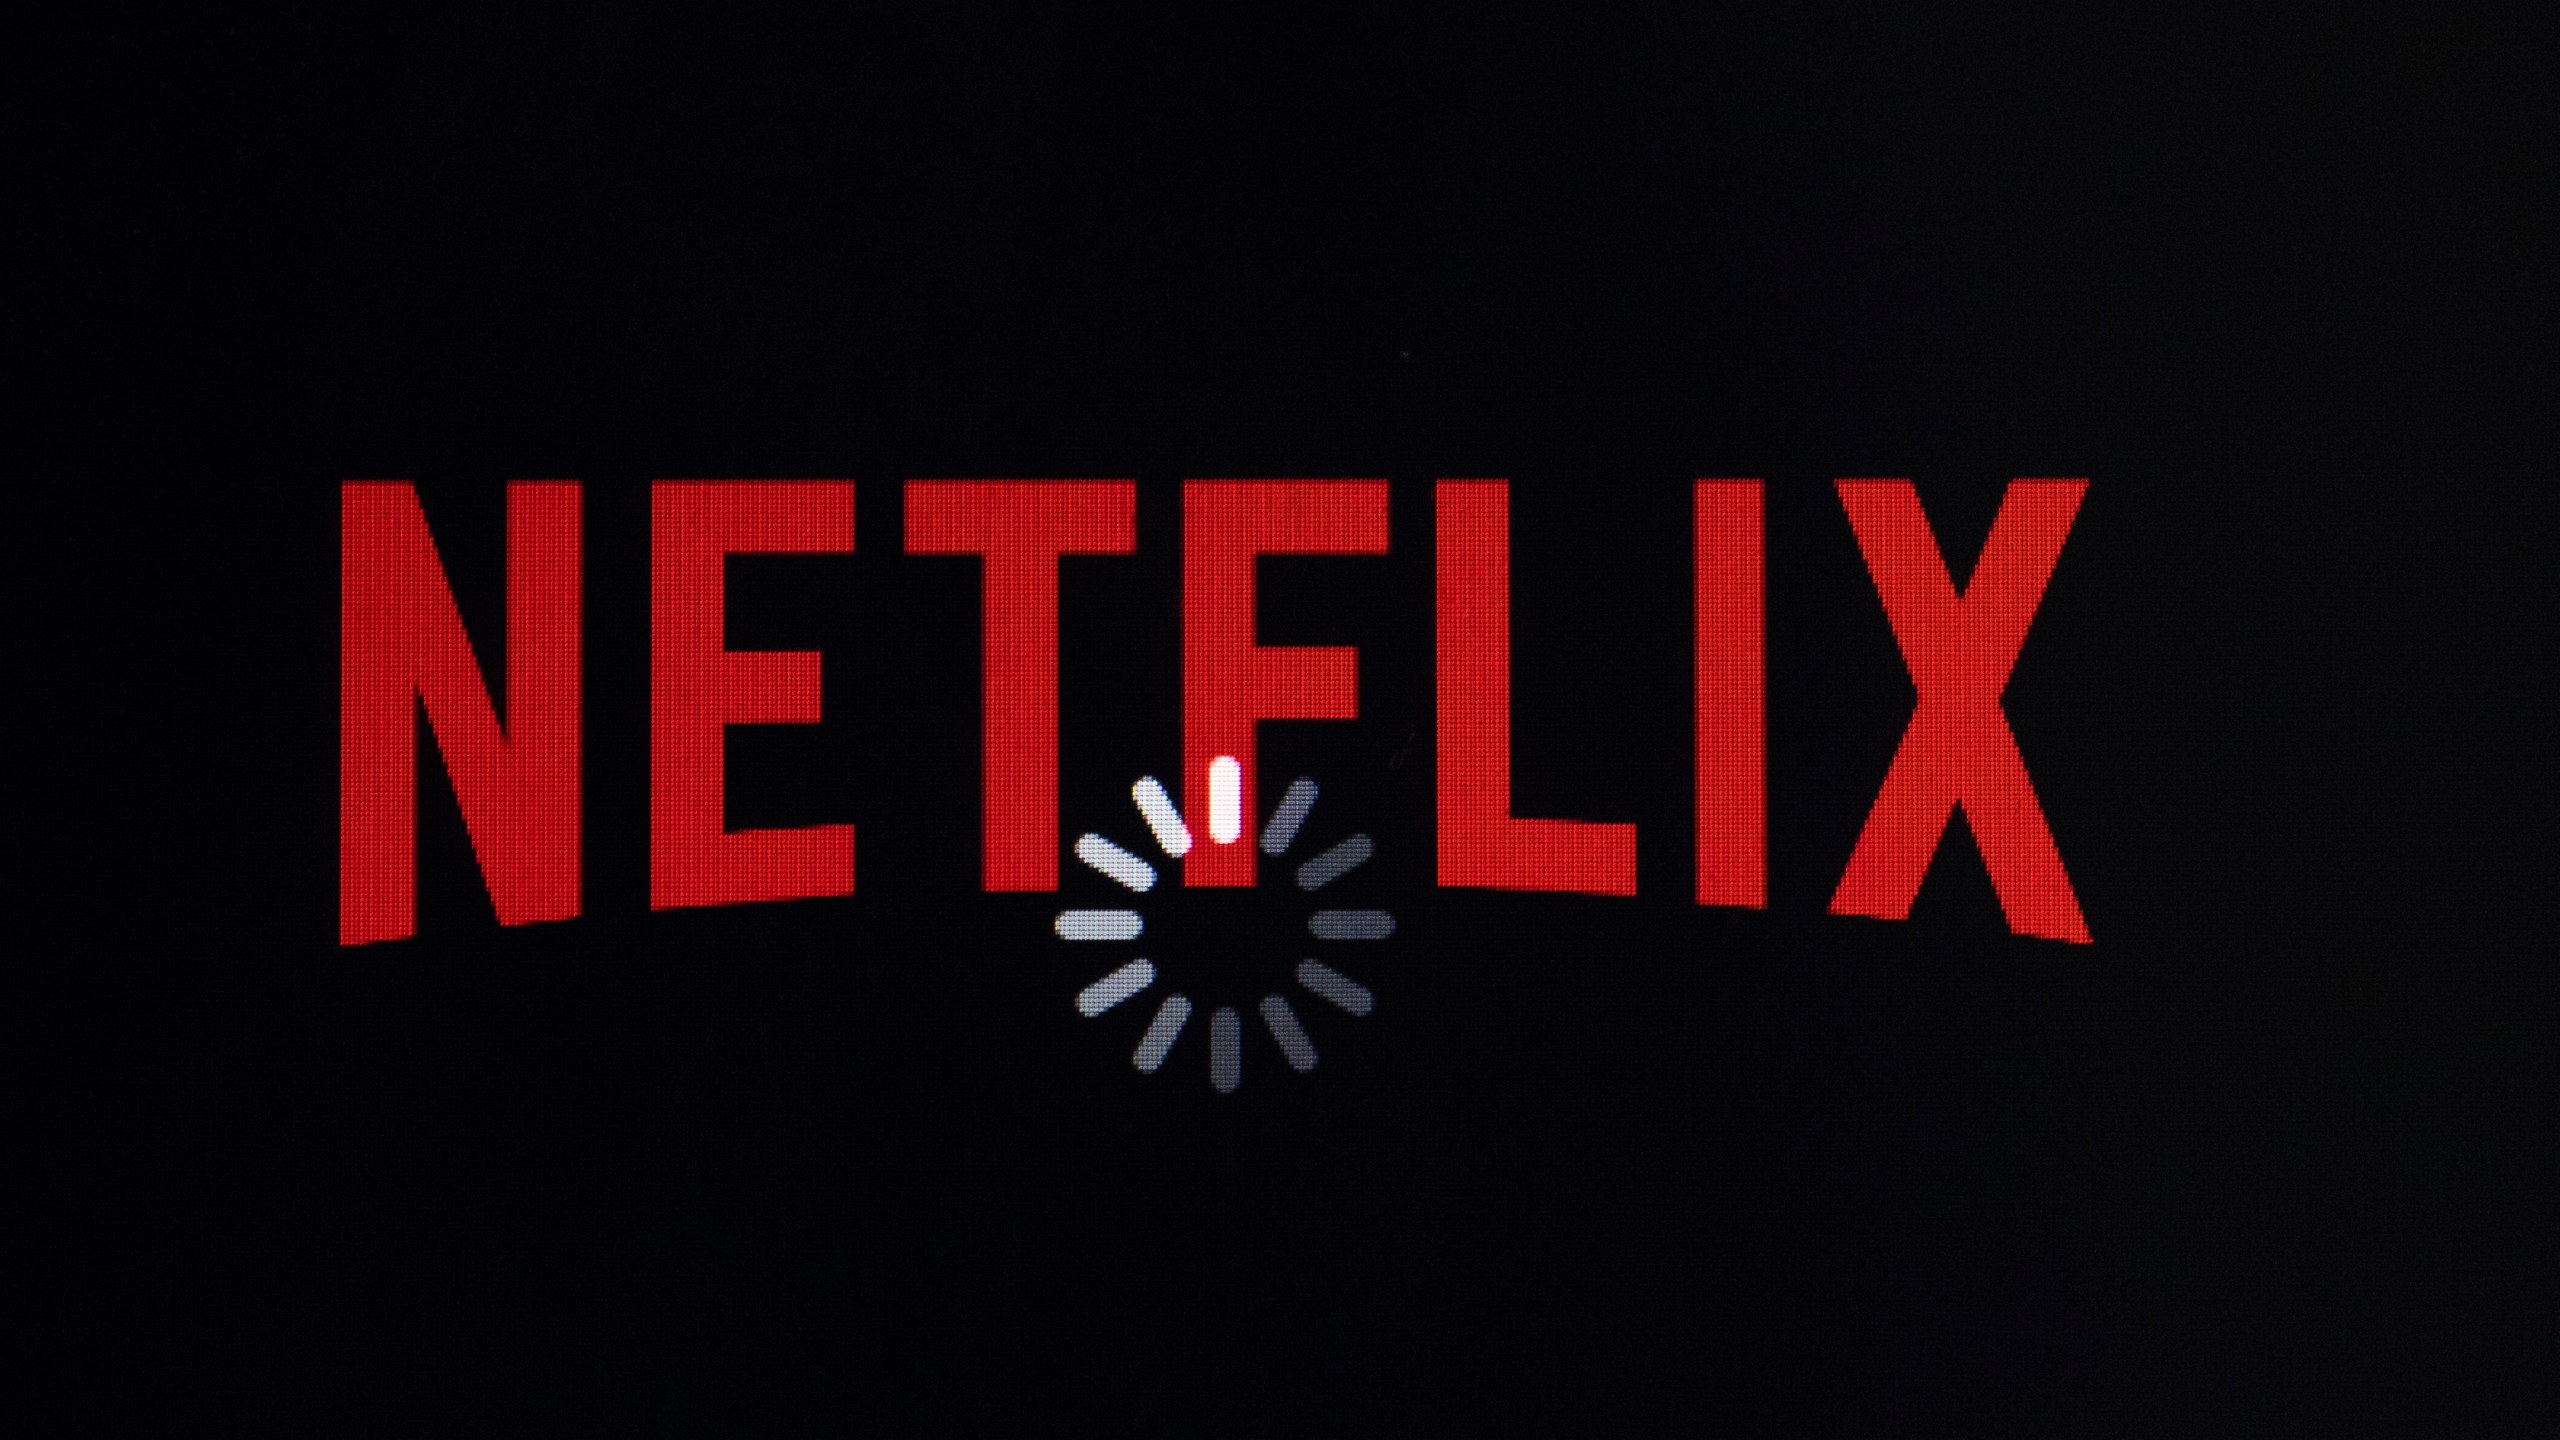 Netflix_Price_Increase_11630-159532.jpg30734000